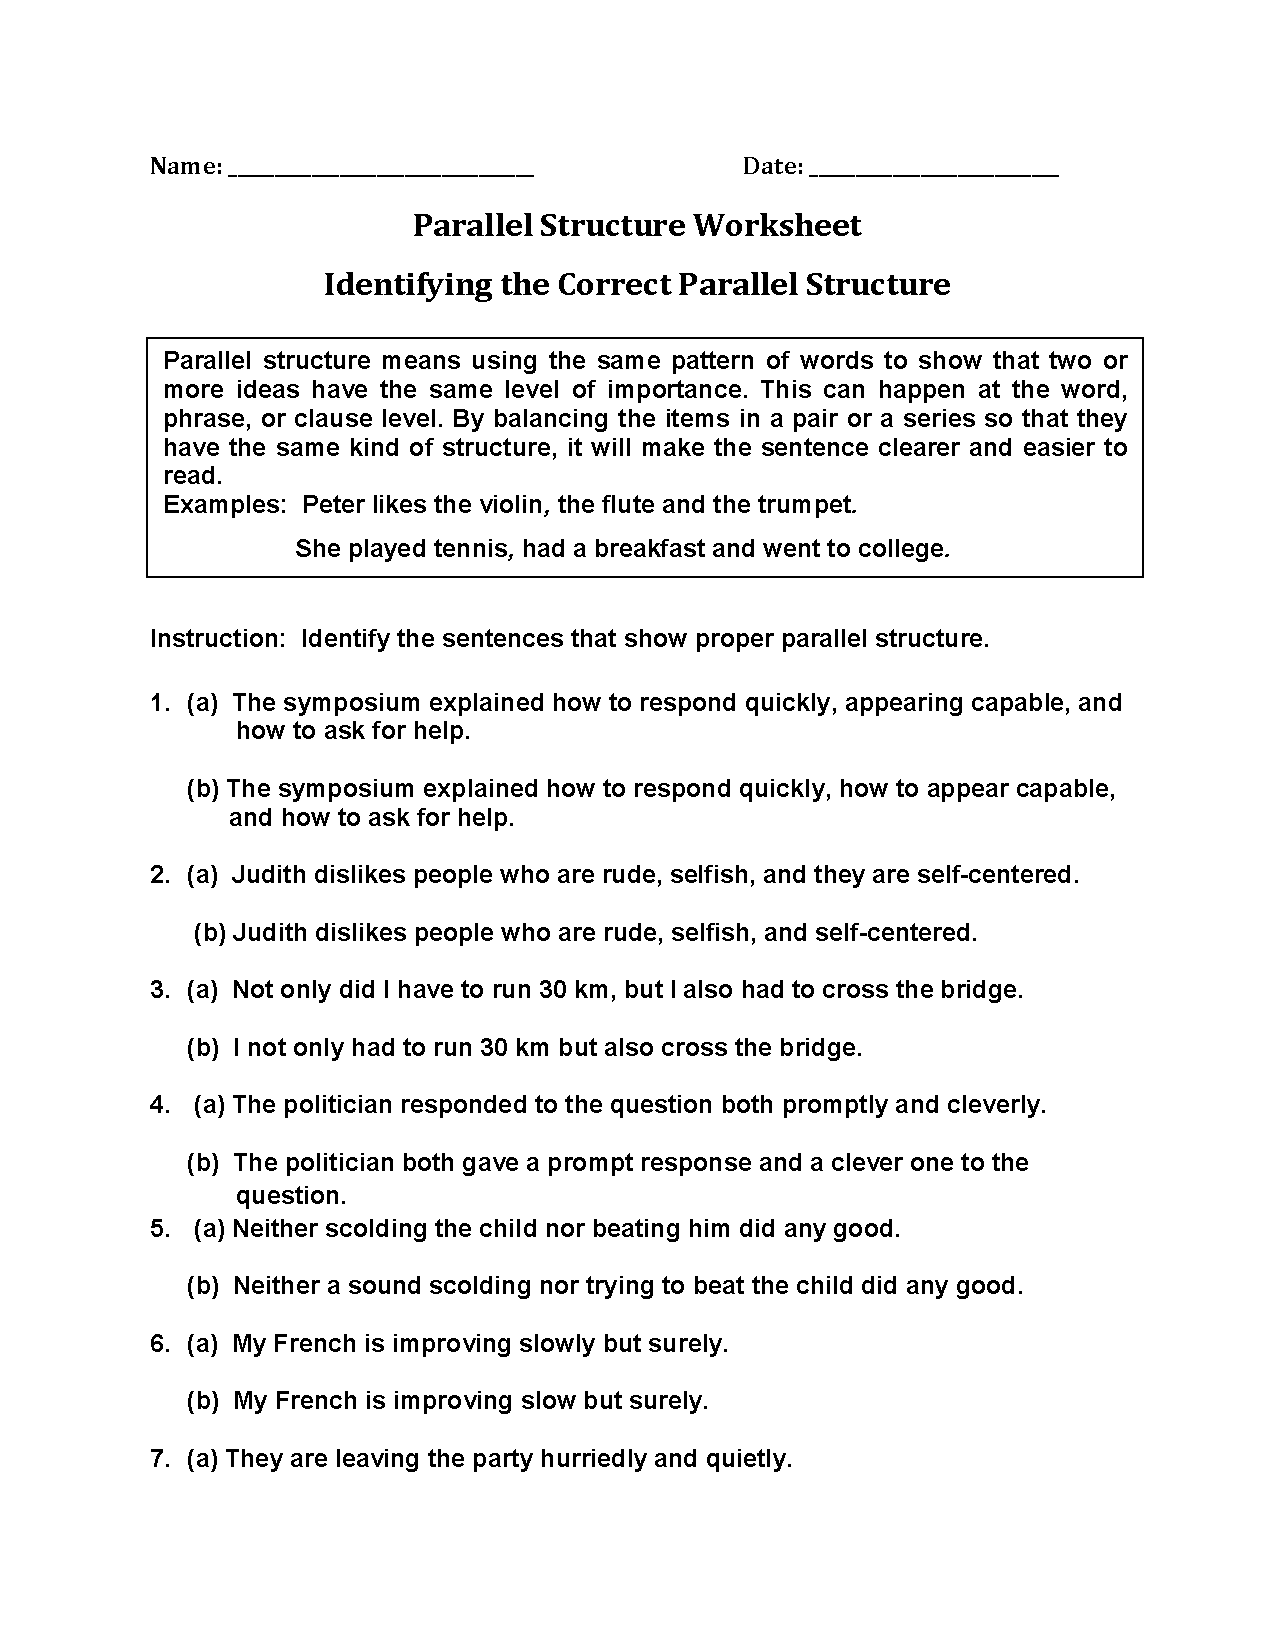 Identifying Correct Parallel Structure Worksheets | Teaching Helps ...